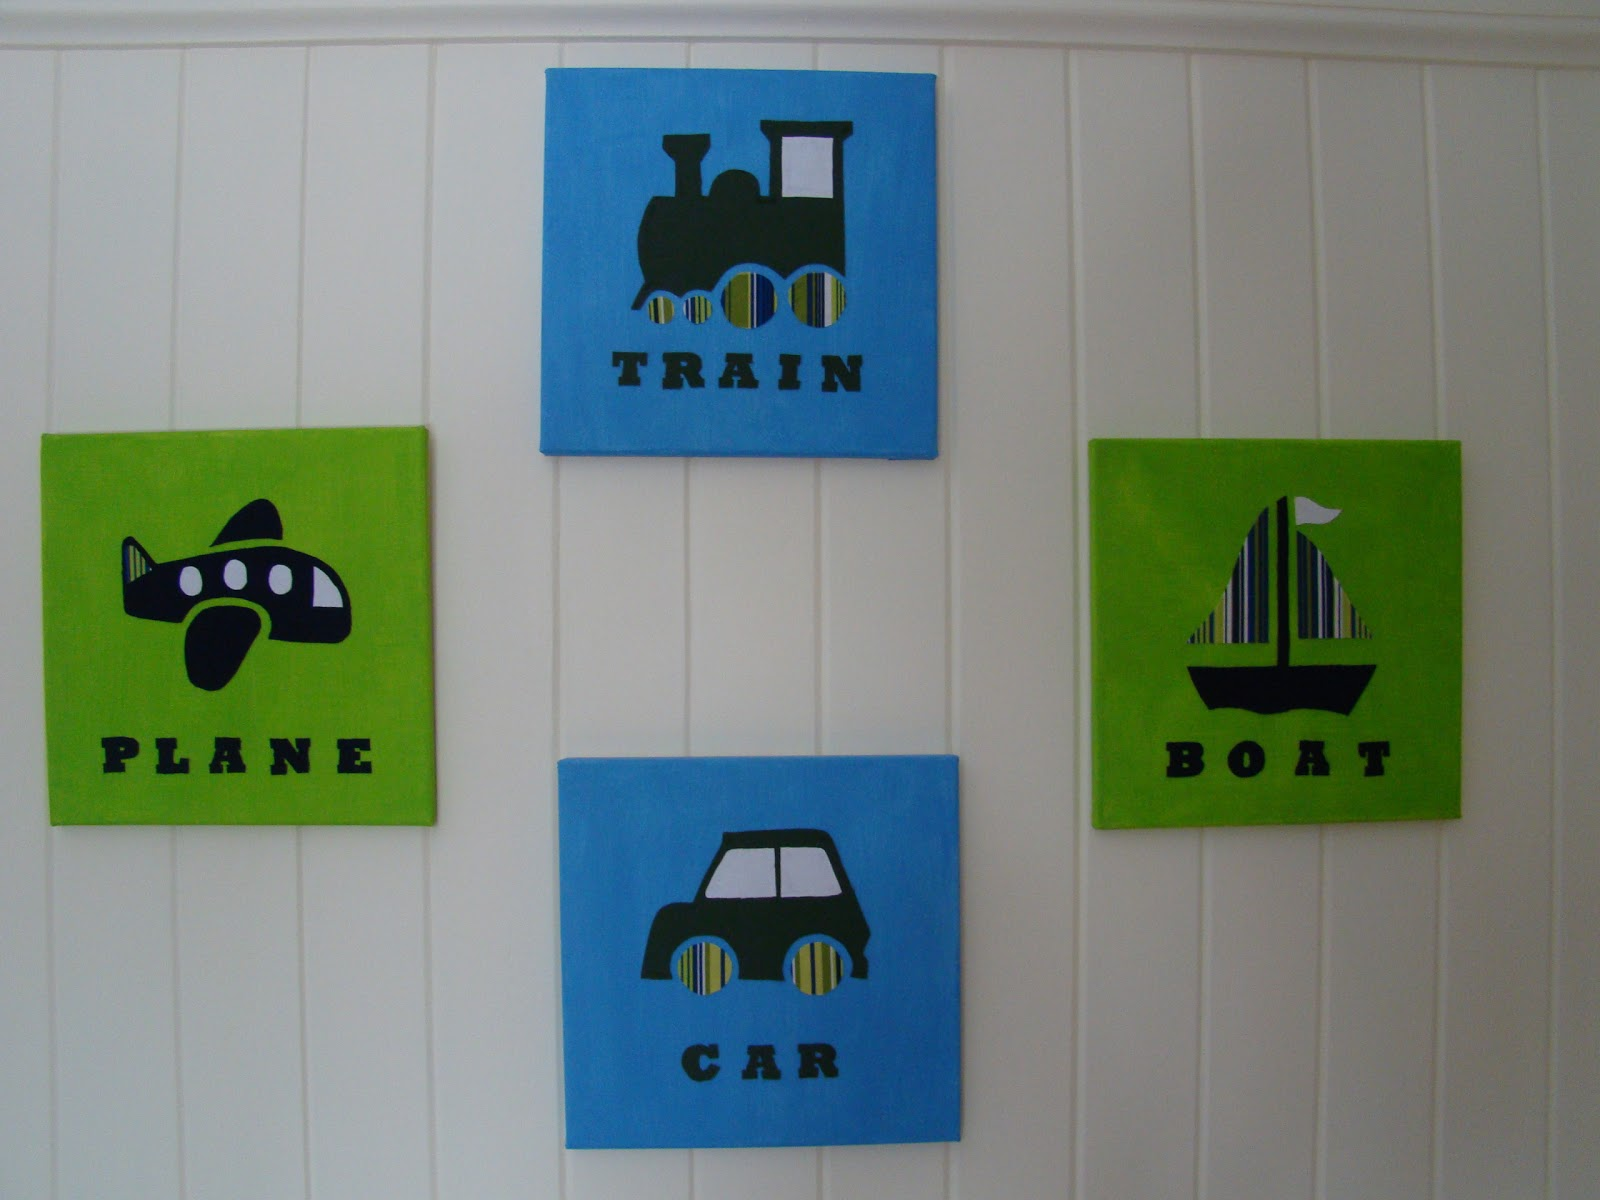 Planes trains and automobiles wall art tutorial with templates planes trains and automobiles wall art tutorial with templates amipublicfo Images